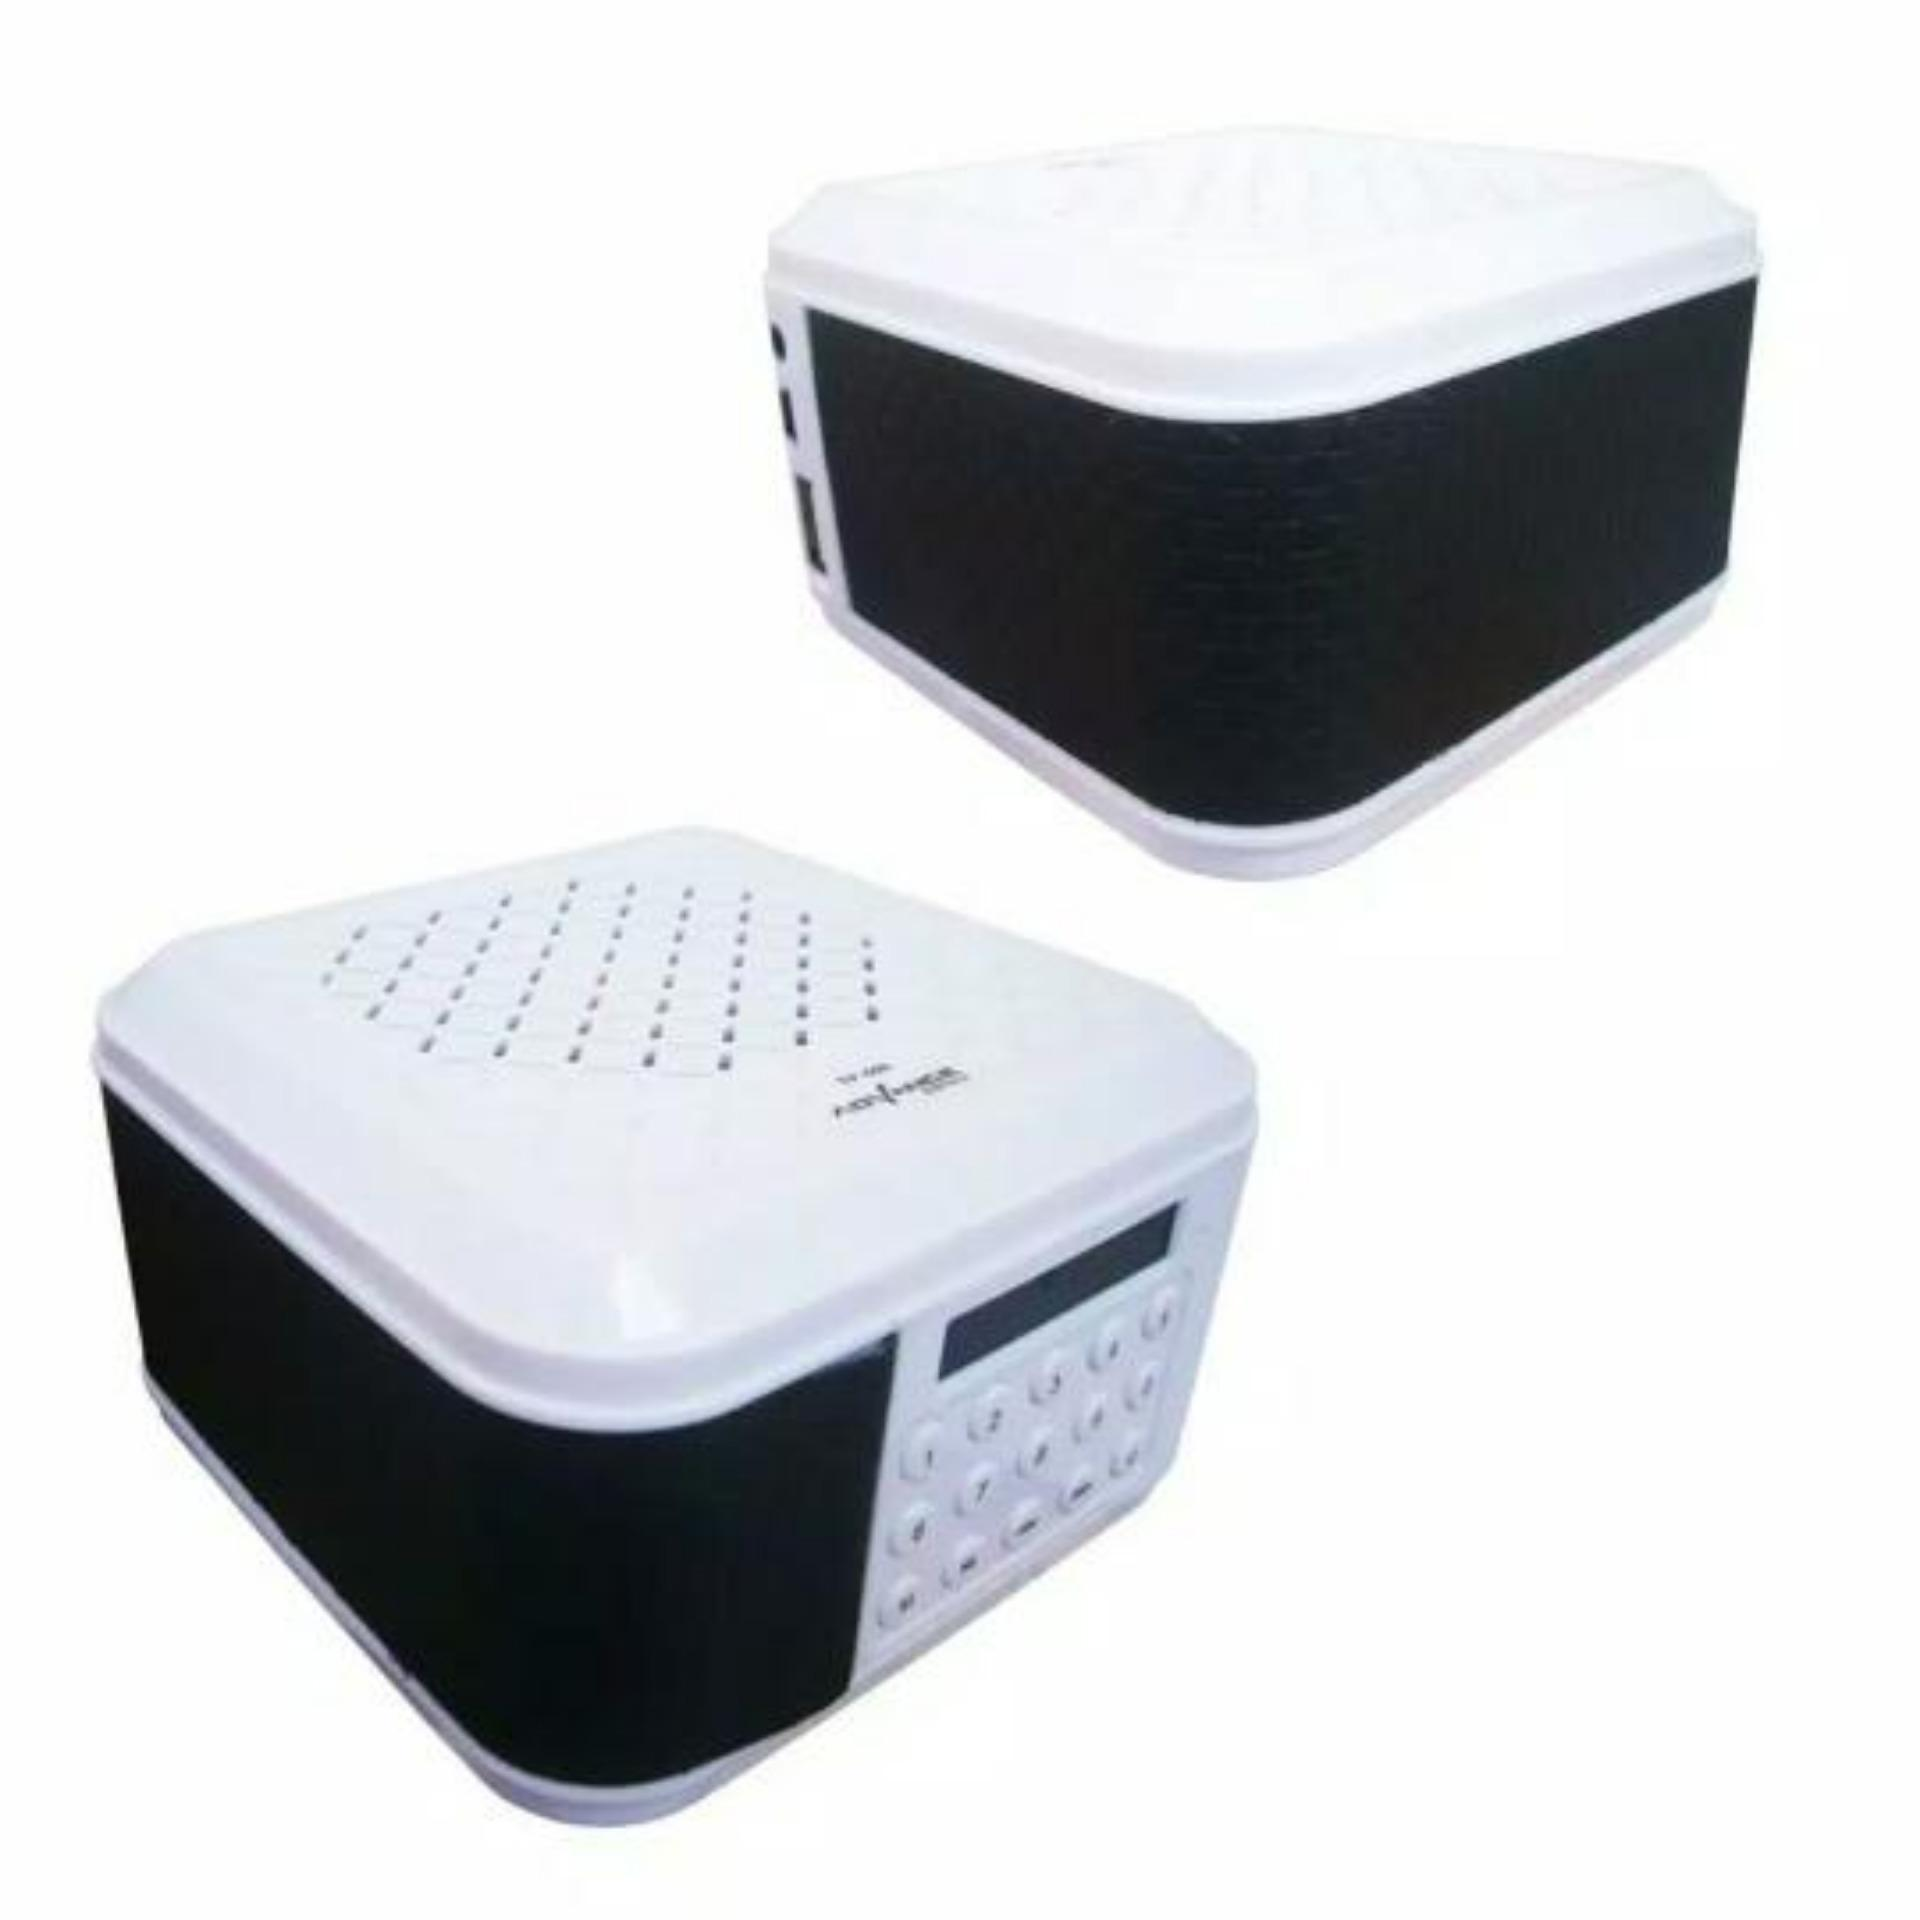 Advance Speaker Active 21 Multimedia Subwoofer M480 Fm Daftar Duo 500 Sj0038 M380 Source Bluetooth Portable